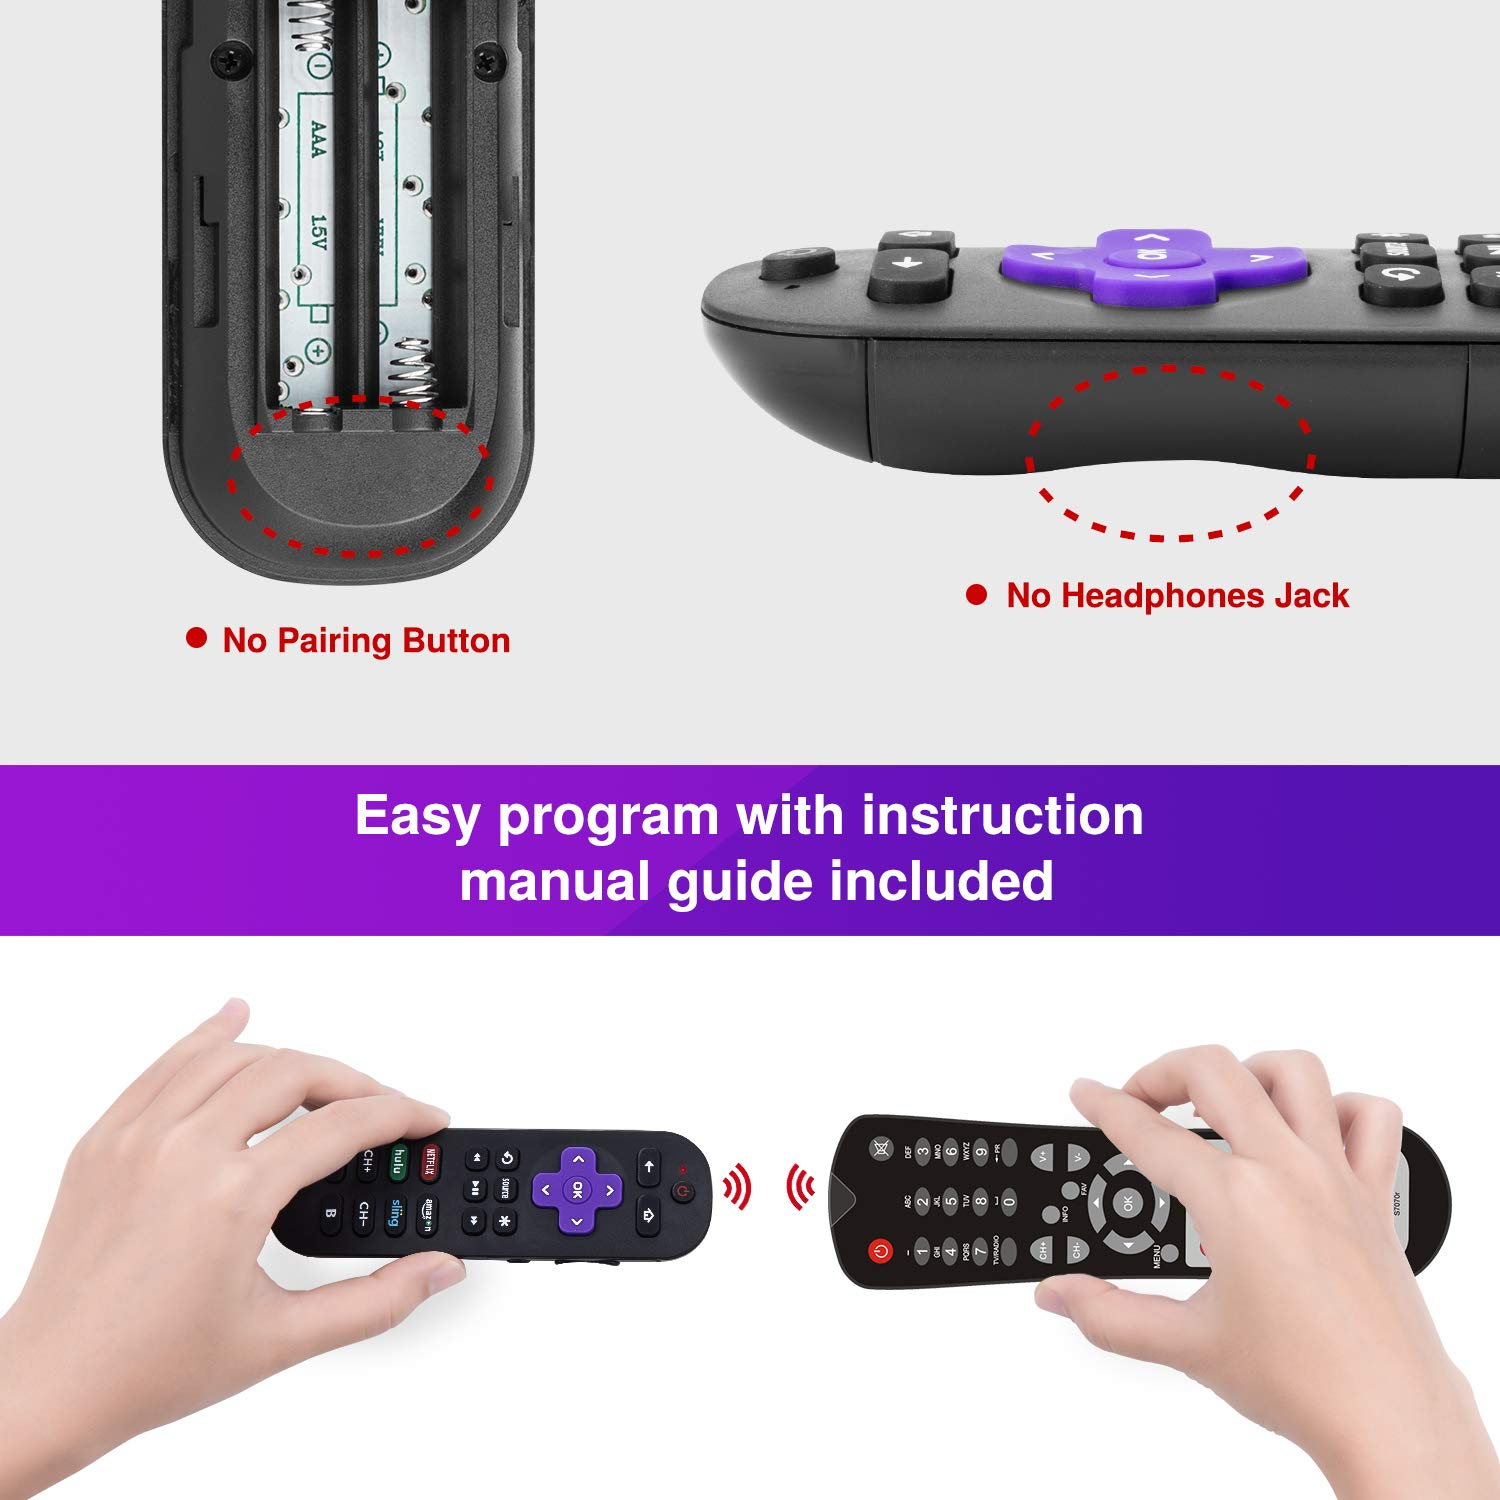 Universal Remote Control For Roku Player With 9 More Learning Keys to Control TV Soundbar Receiver All in One (Fit For Roku 1 2 3 4 Premier+ Express Ultra)【NOT FOR ROKU STICK & BUILT-IN ROKU TV】 by Hztprm (Image #6)